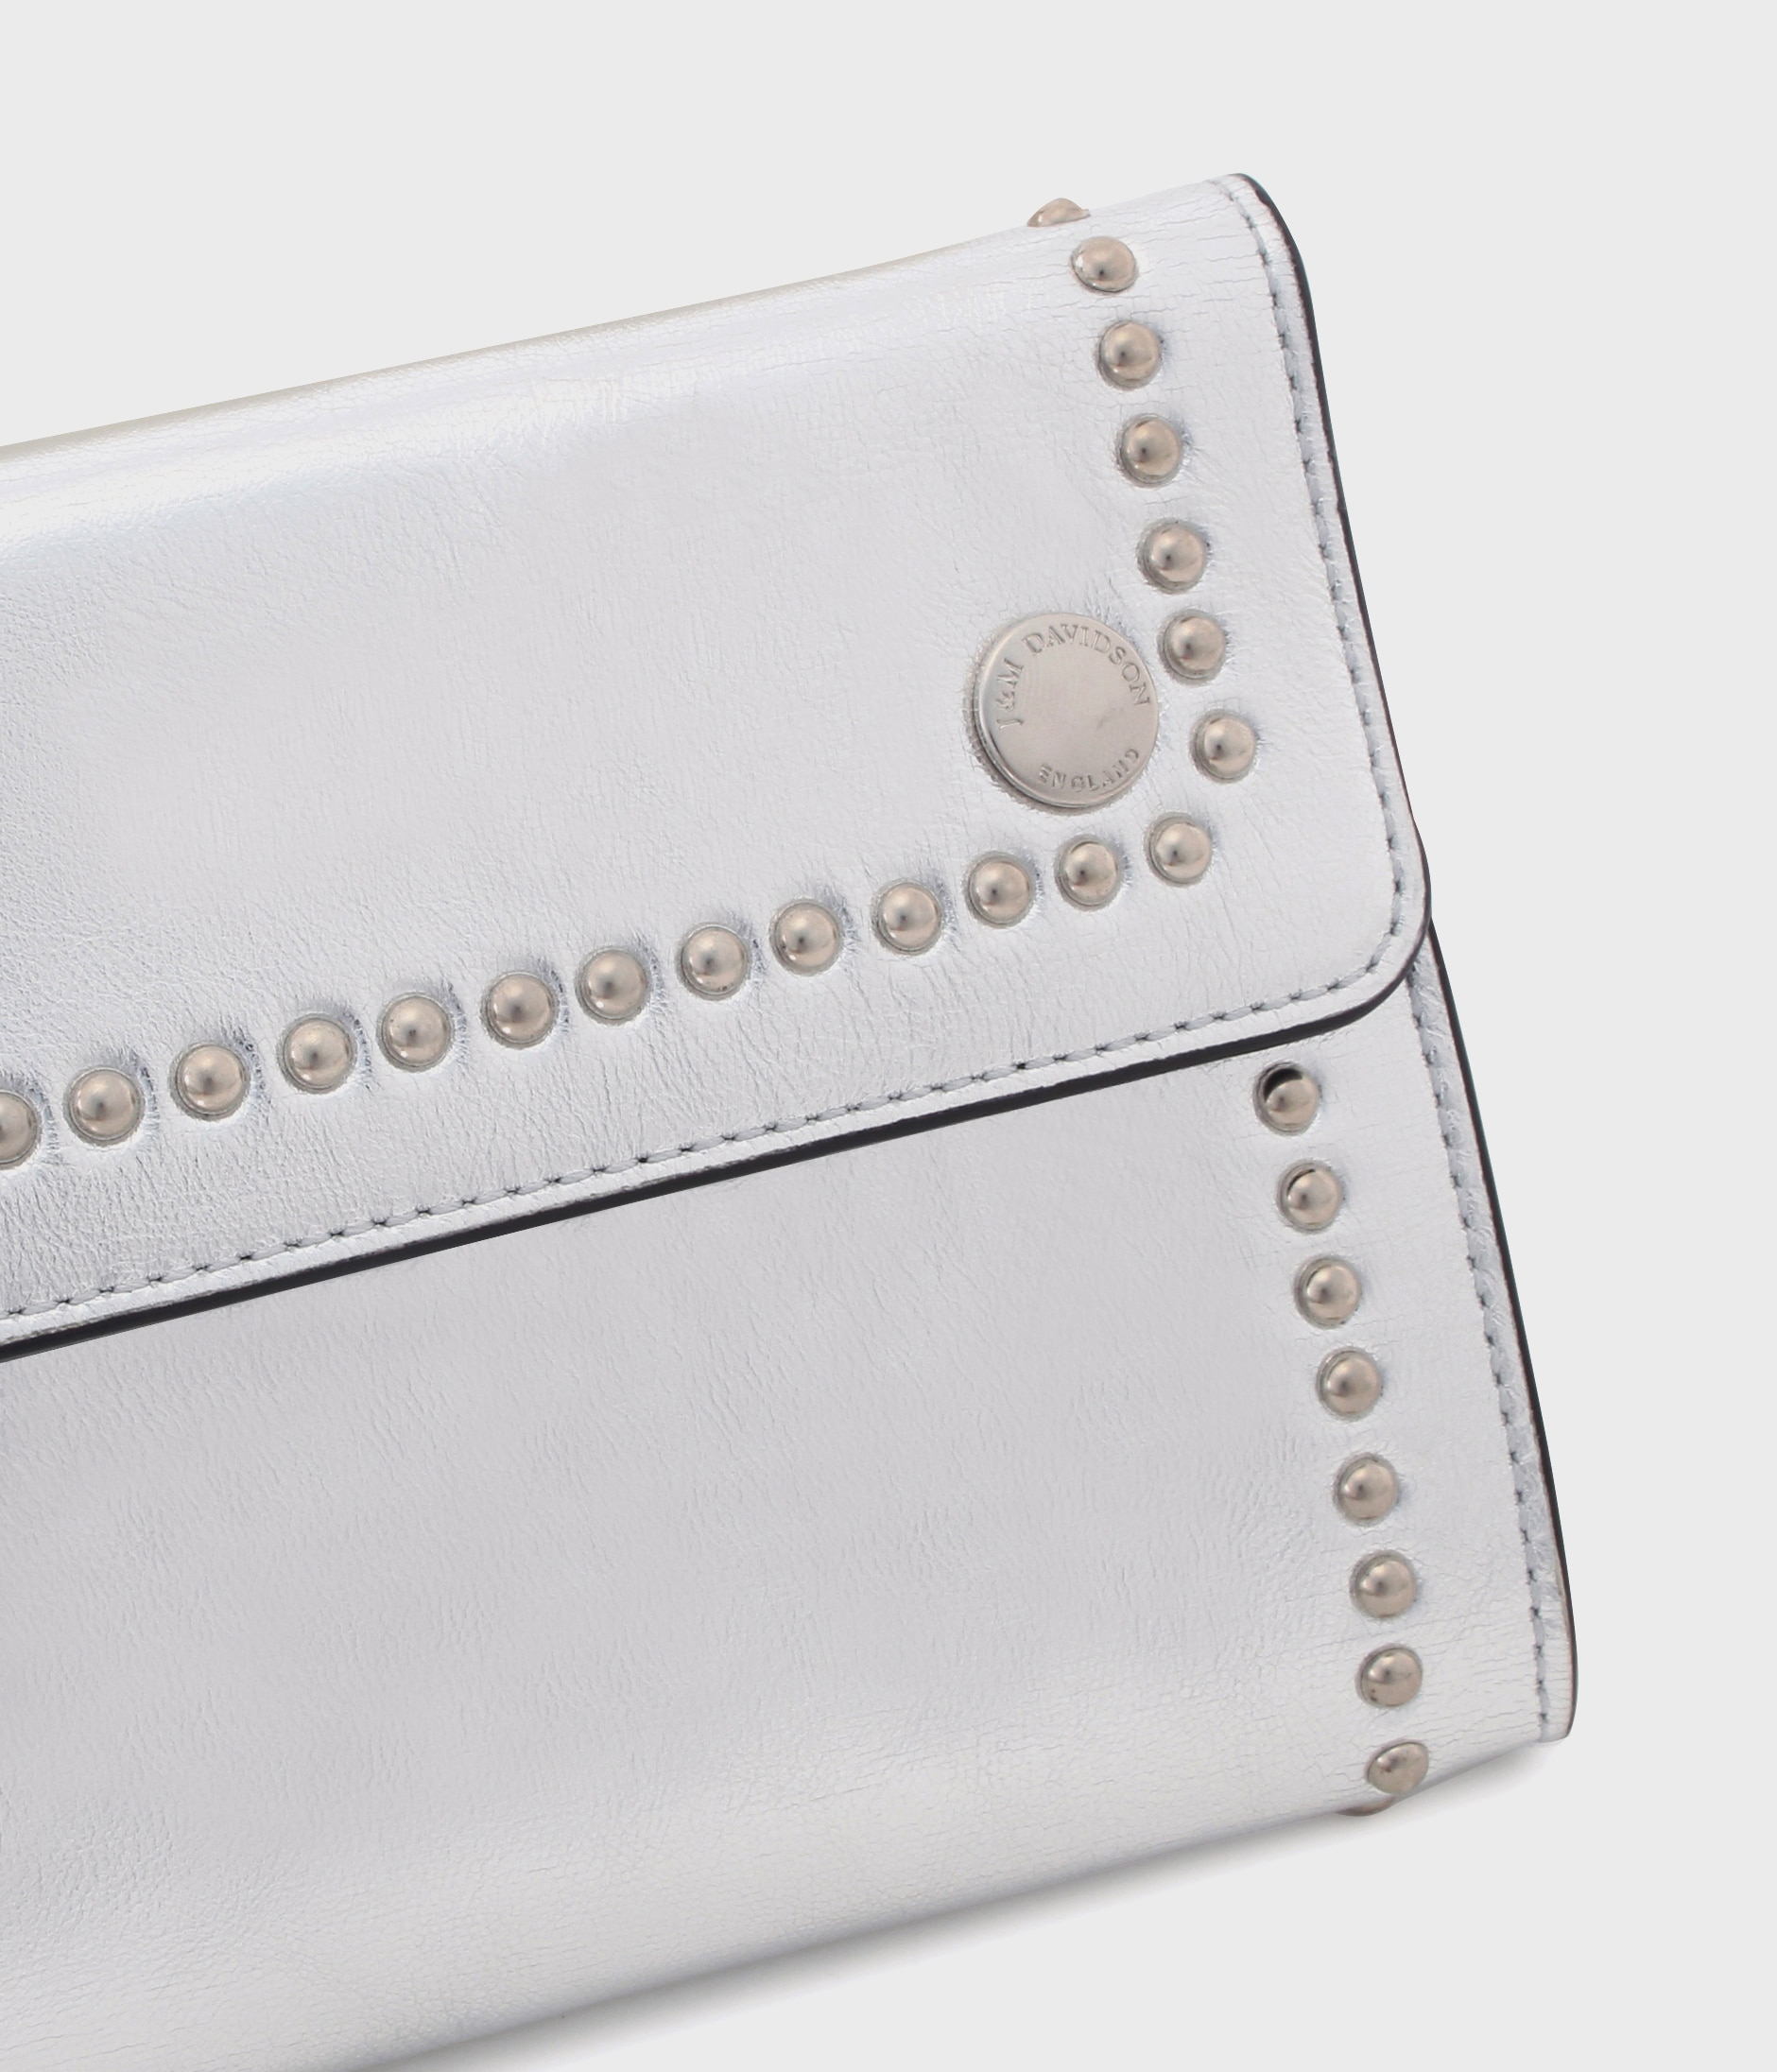 TRAVEL POUCH WITH STUDS 詳細画像 SILVER 3